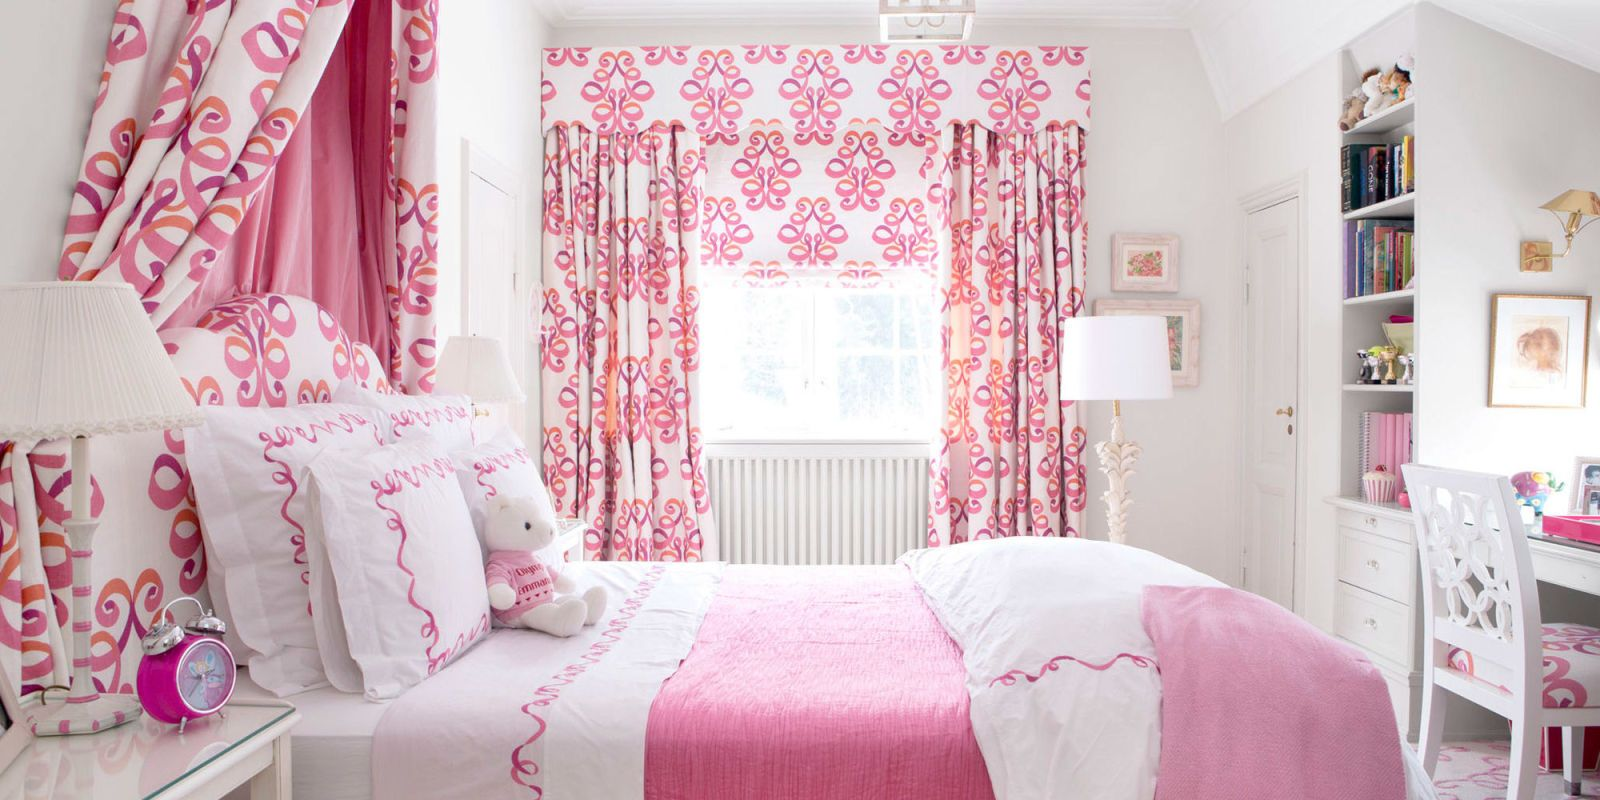 From Blush To Bubblegum, These Rooms Prove That Pink Is Fun, Flattering,  And Not Just For February 14th.